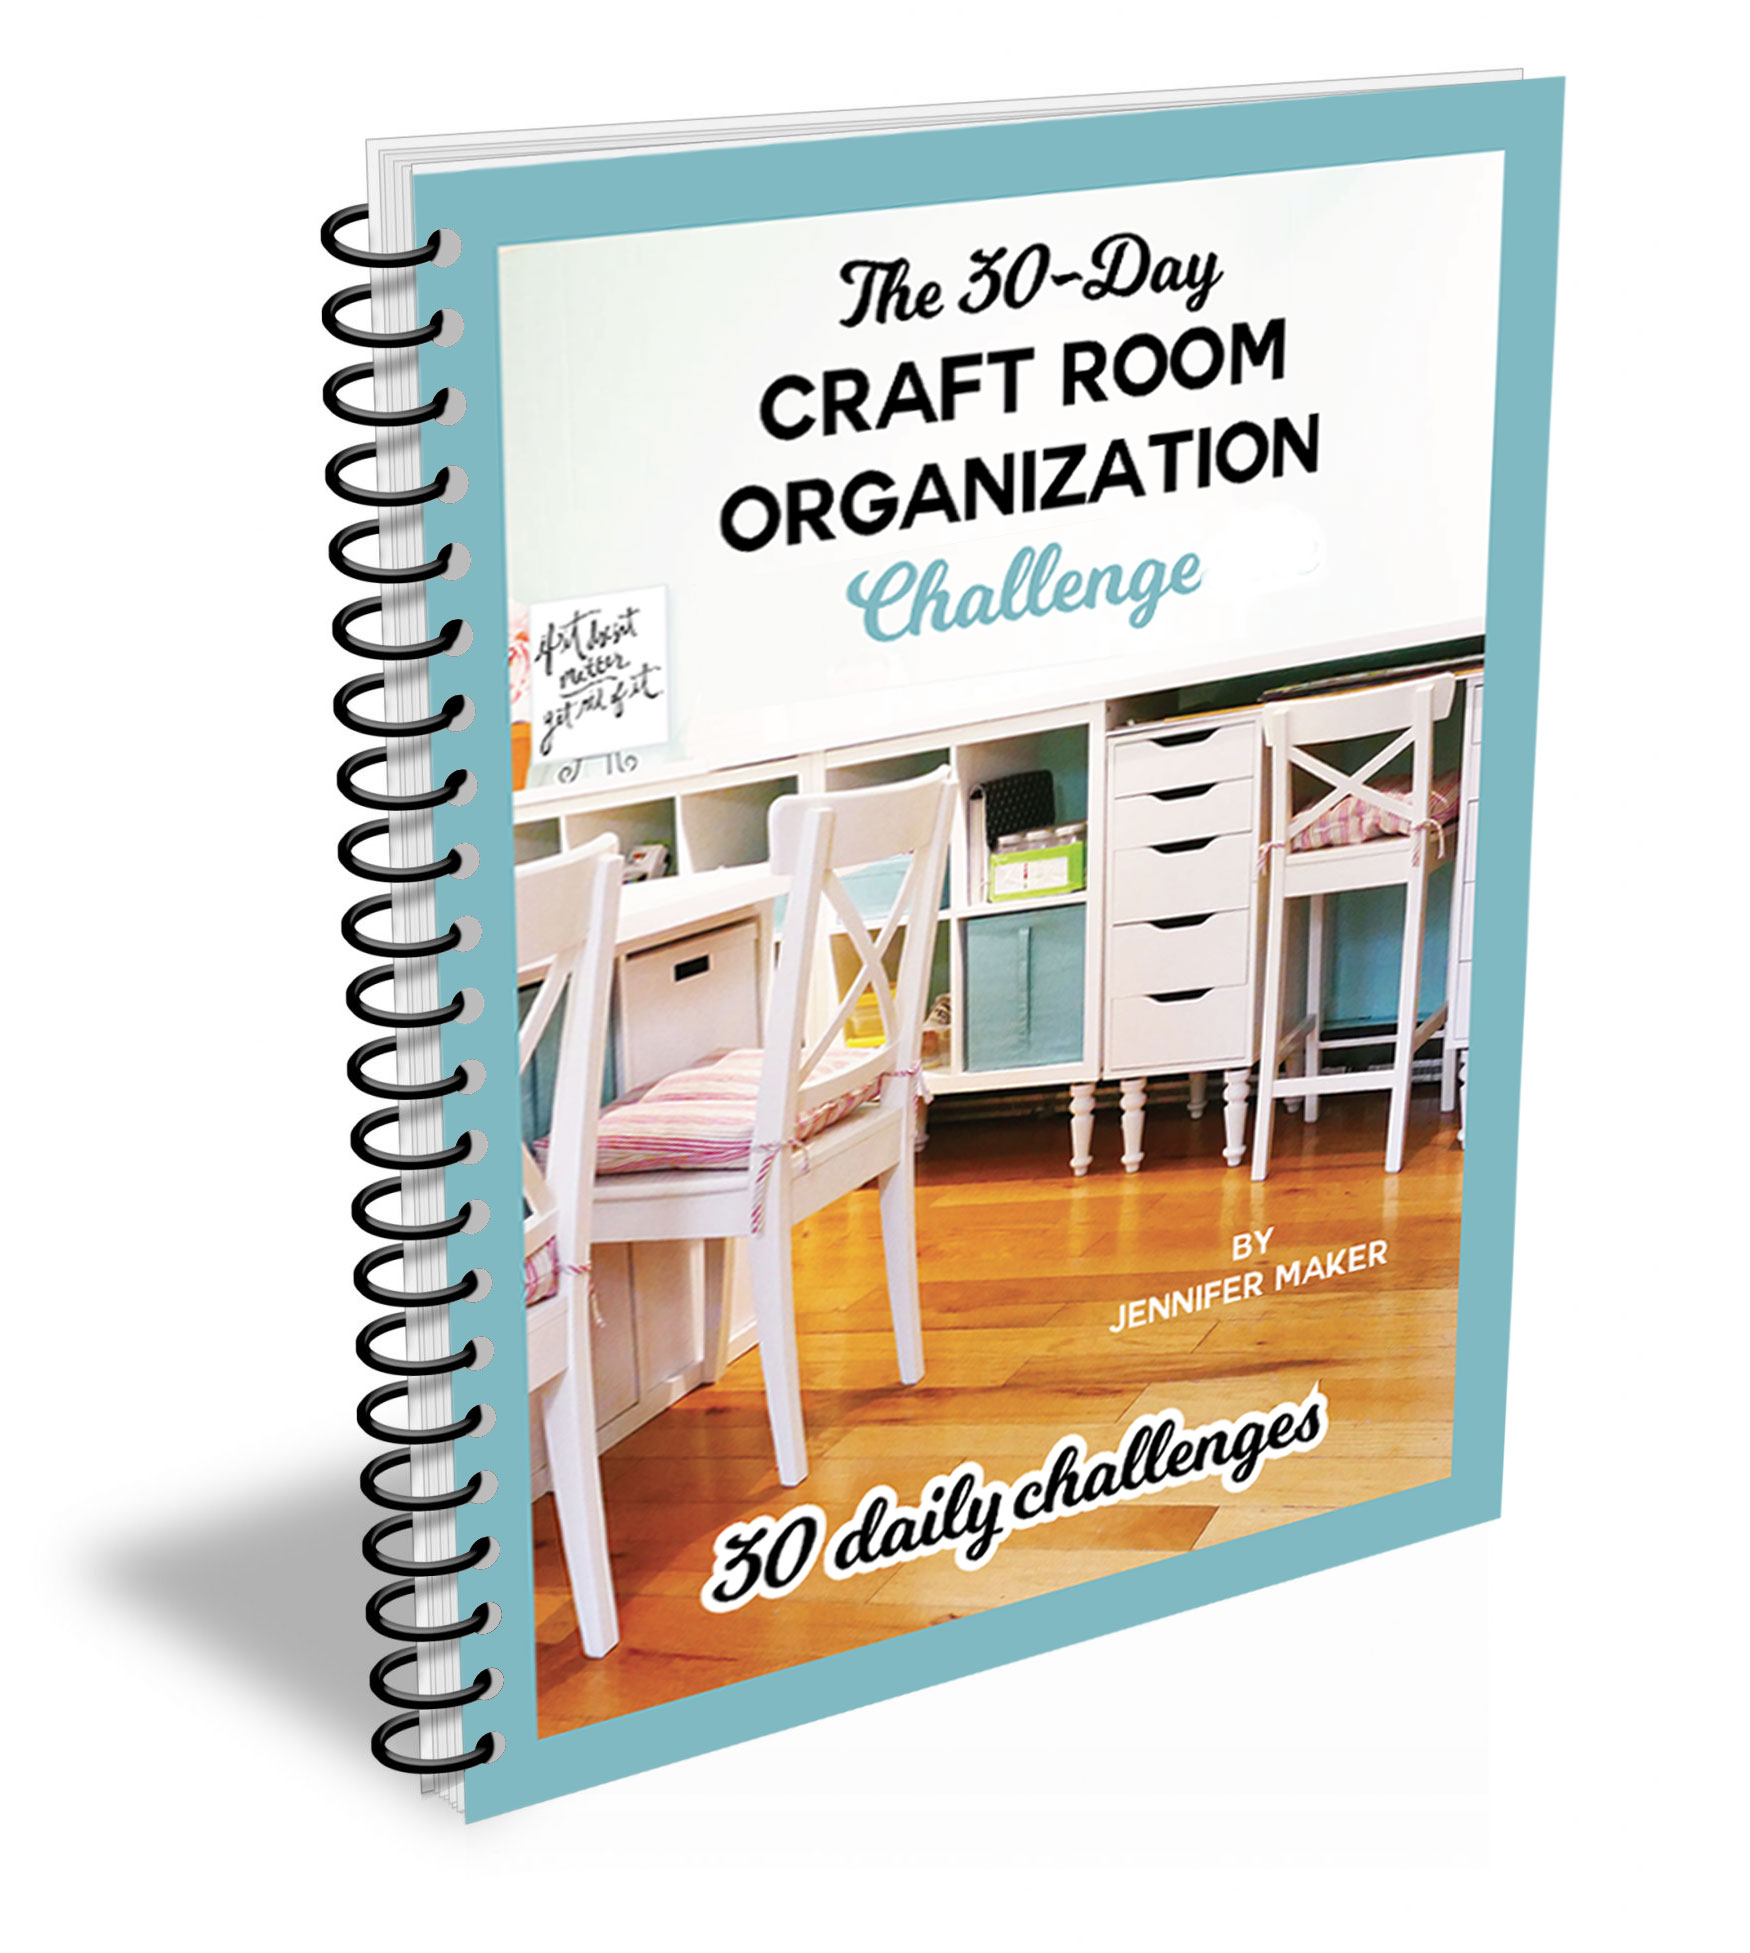 Click here to join the 30-Day Craft Room Organization Challenge